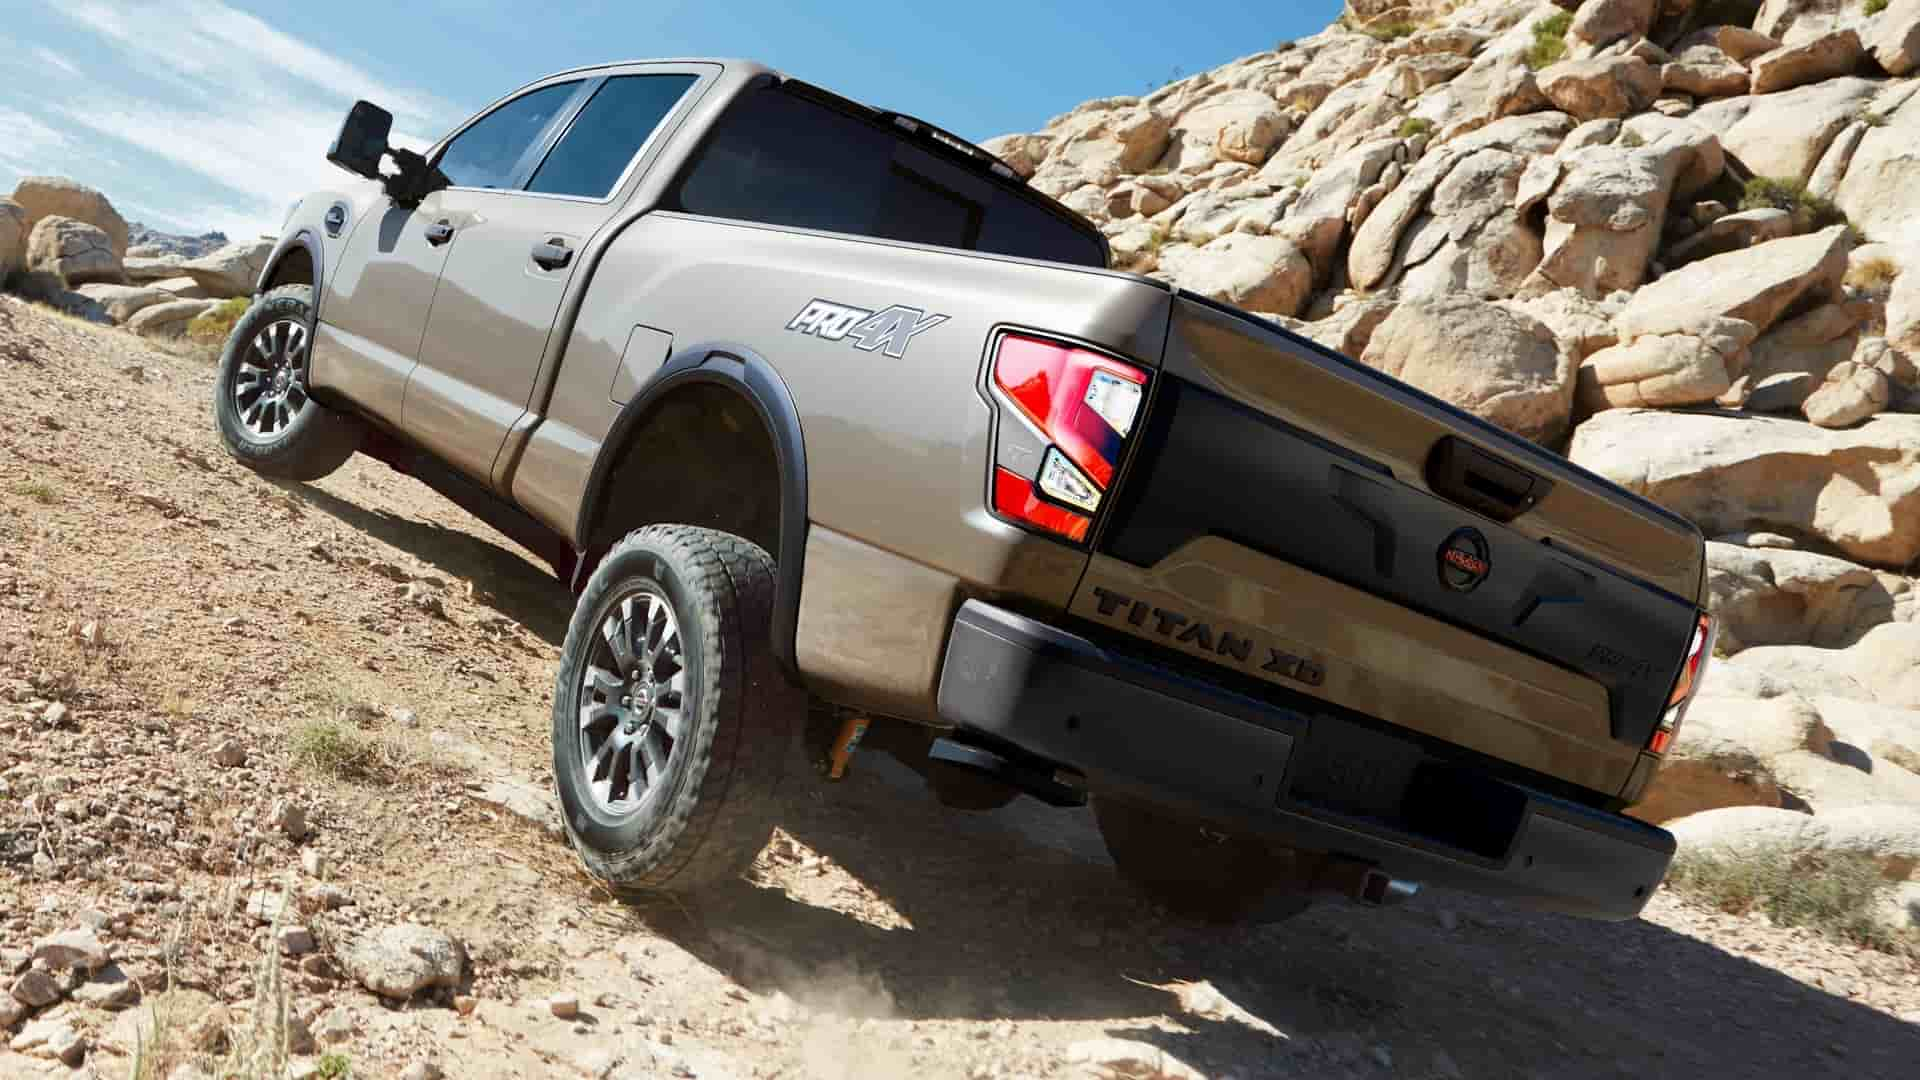 Explore the 2020 Nissan Titan near Orange CA